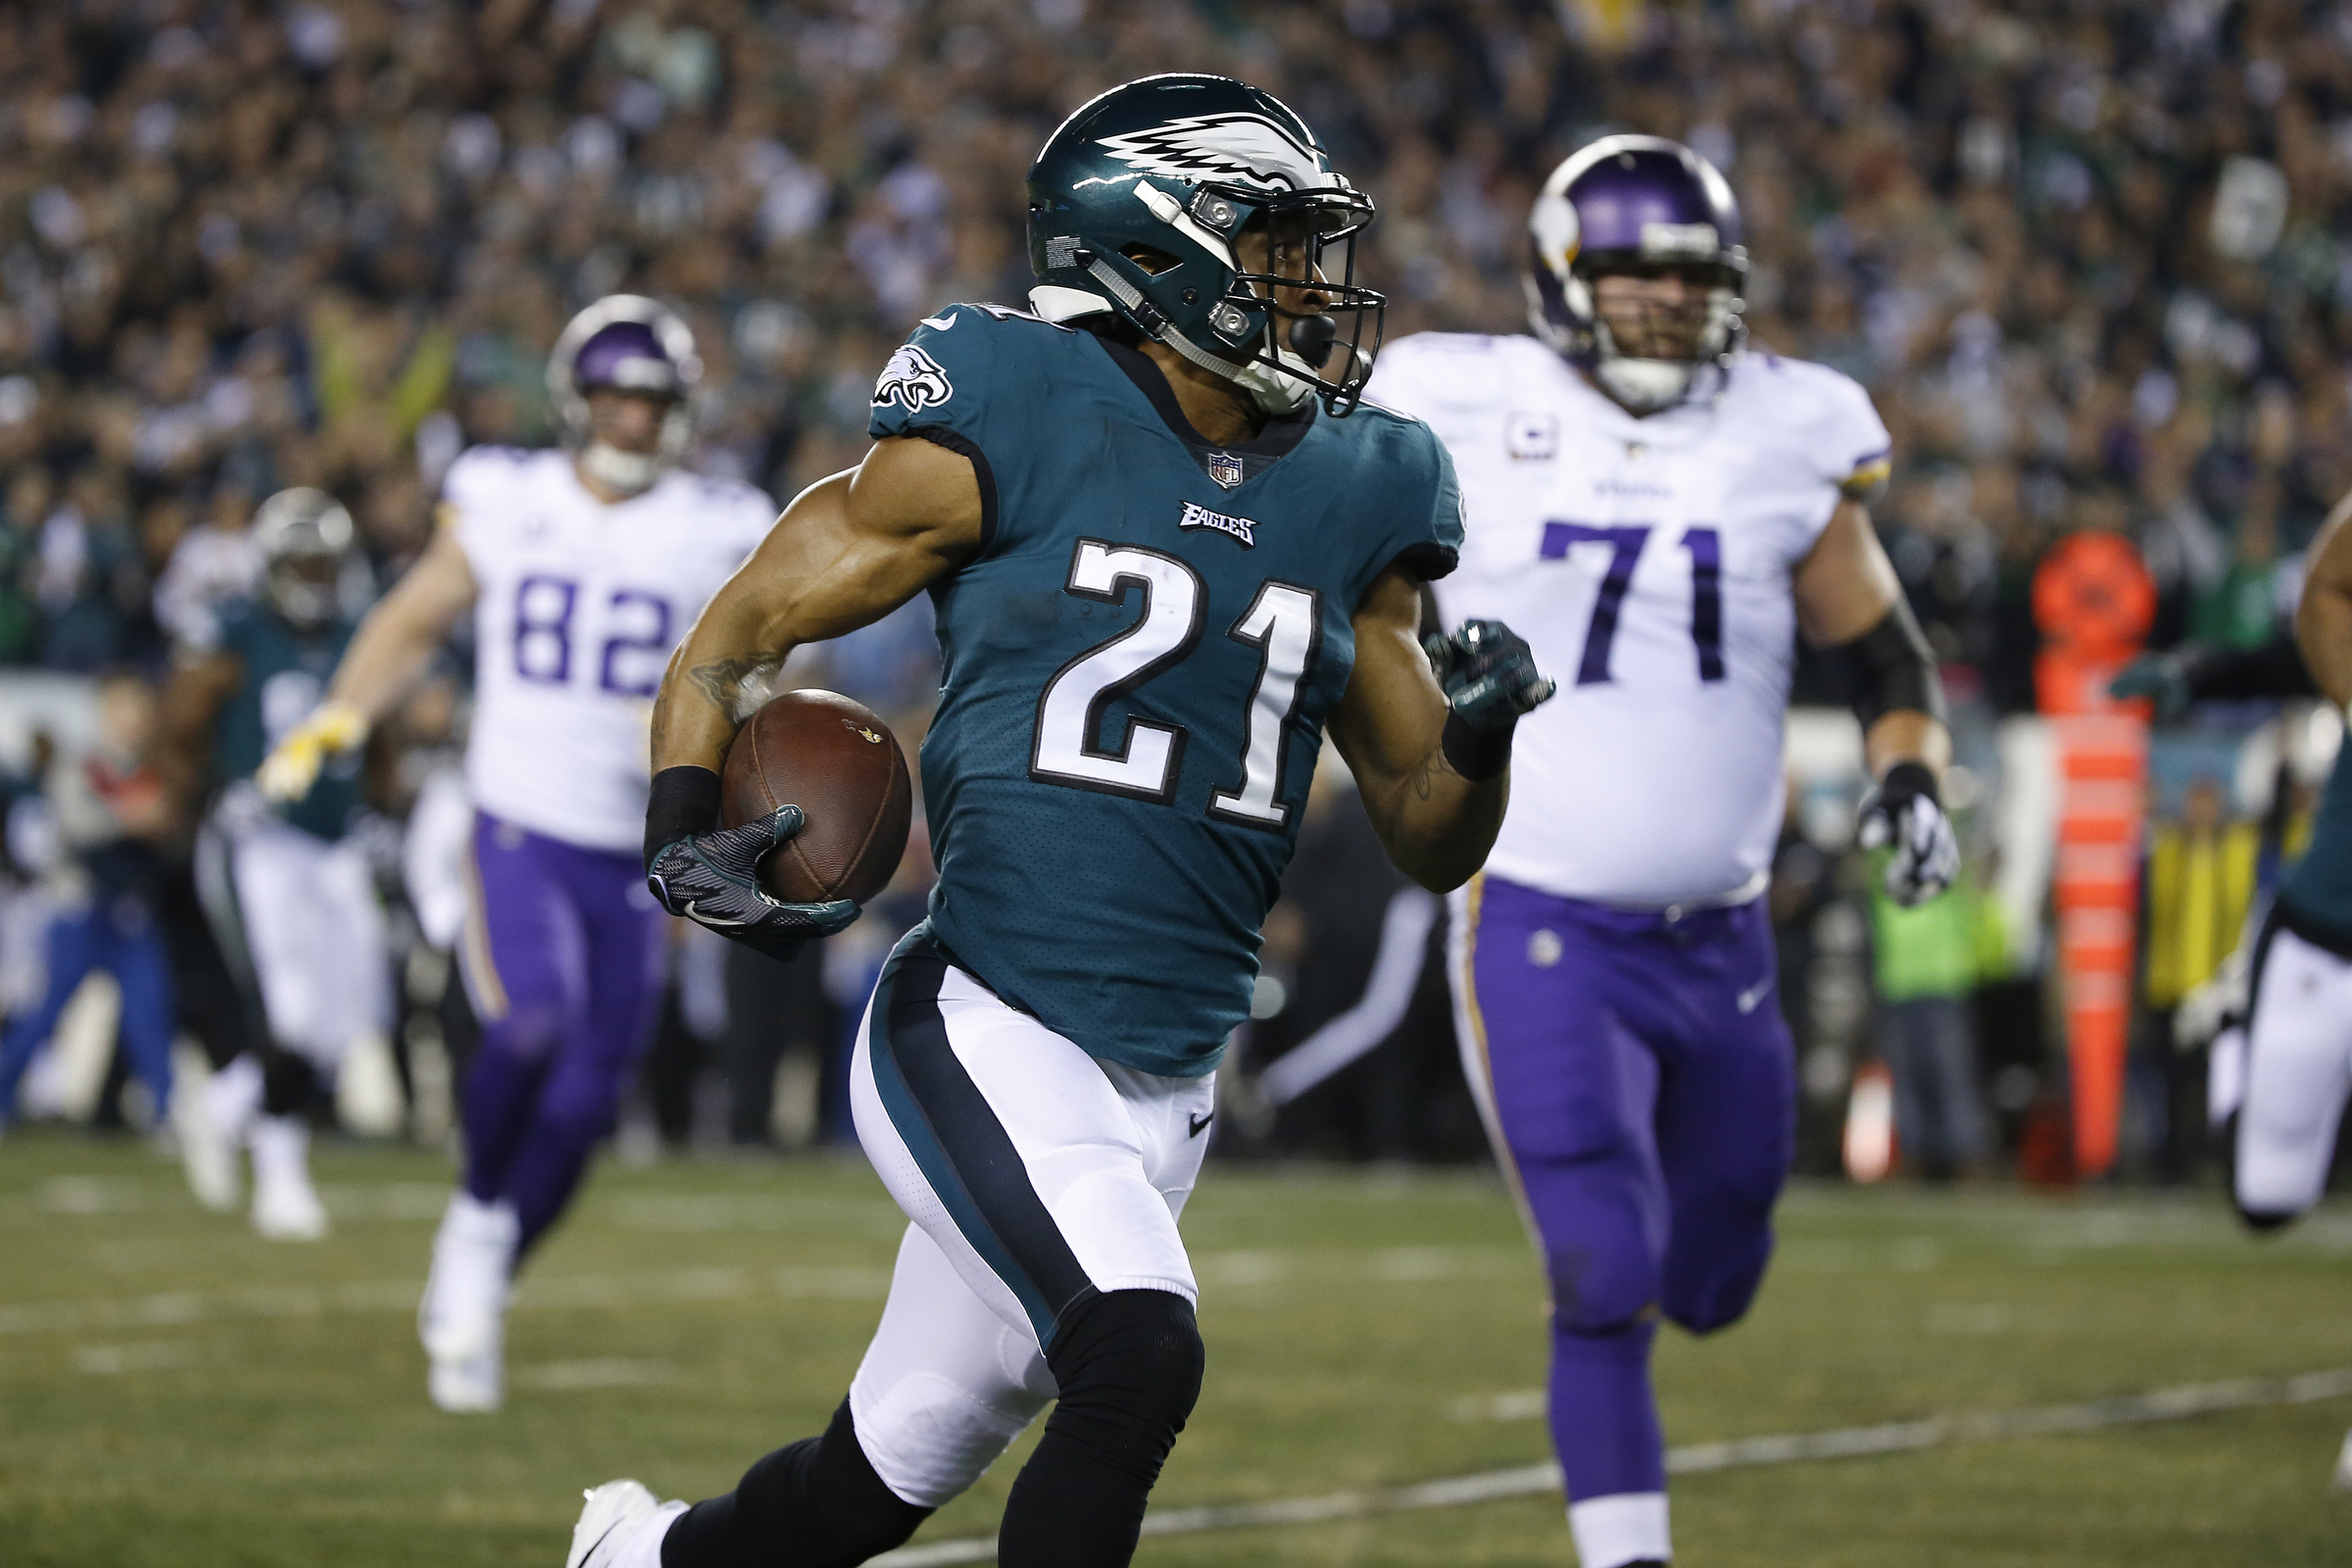 Tough Business: Eagles cornerback Patrick Robinson, who returned an interception for a touchdown in the NFC Championship Game, is likely an odd man out for the Eagles´ plans for 2018.